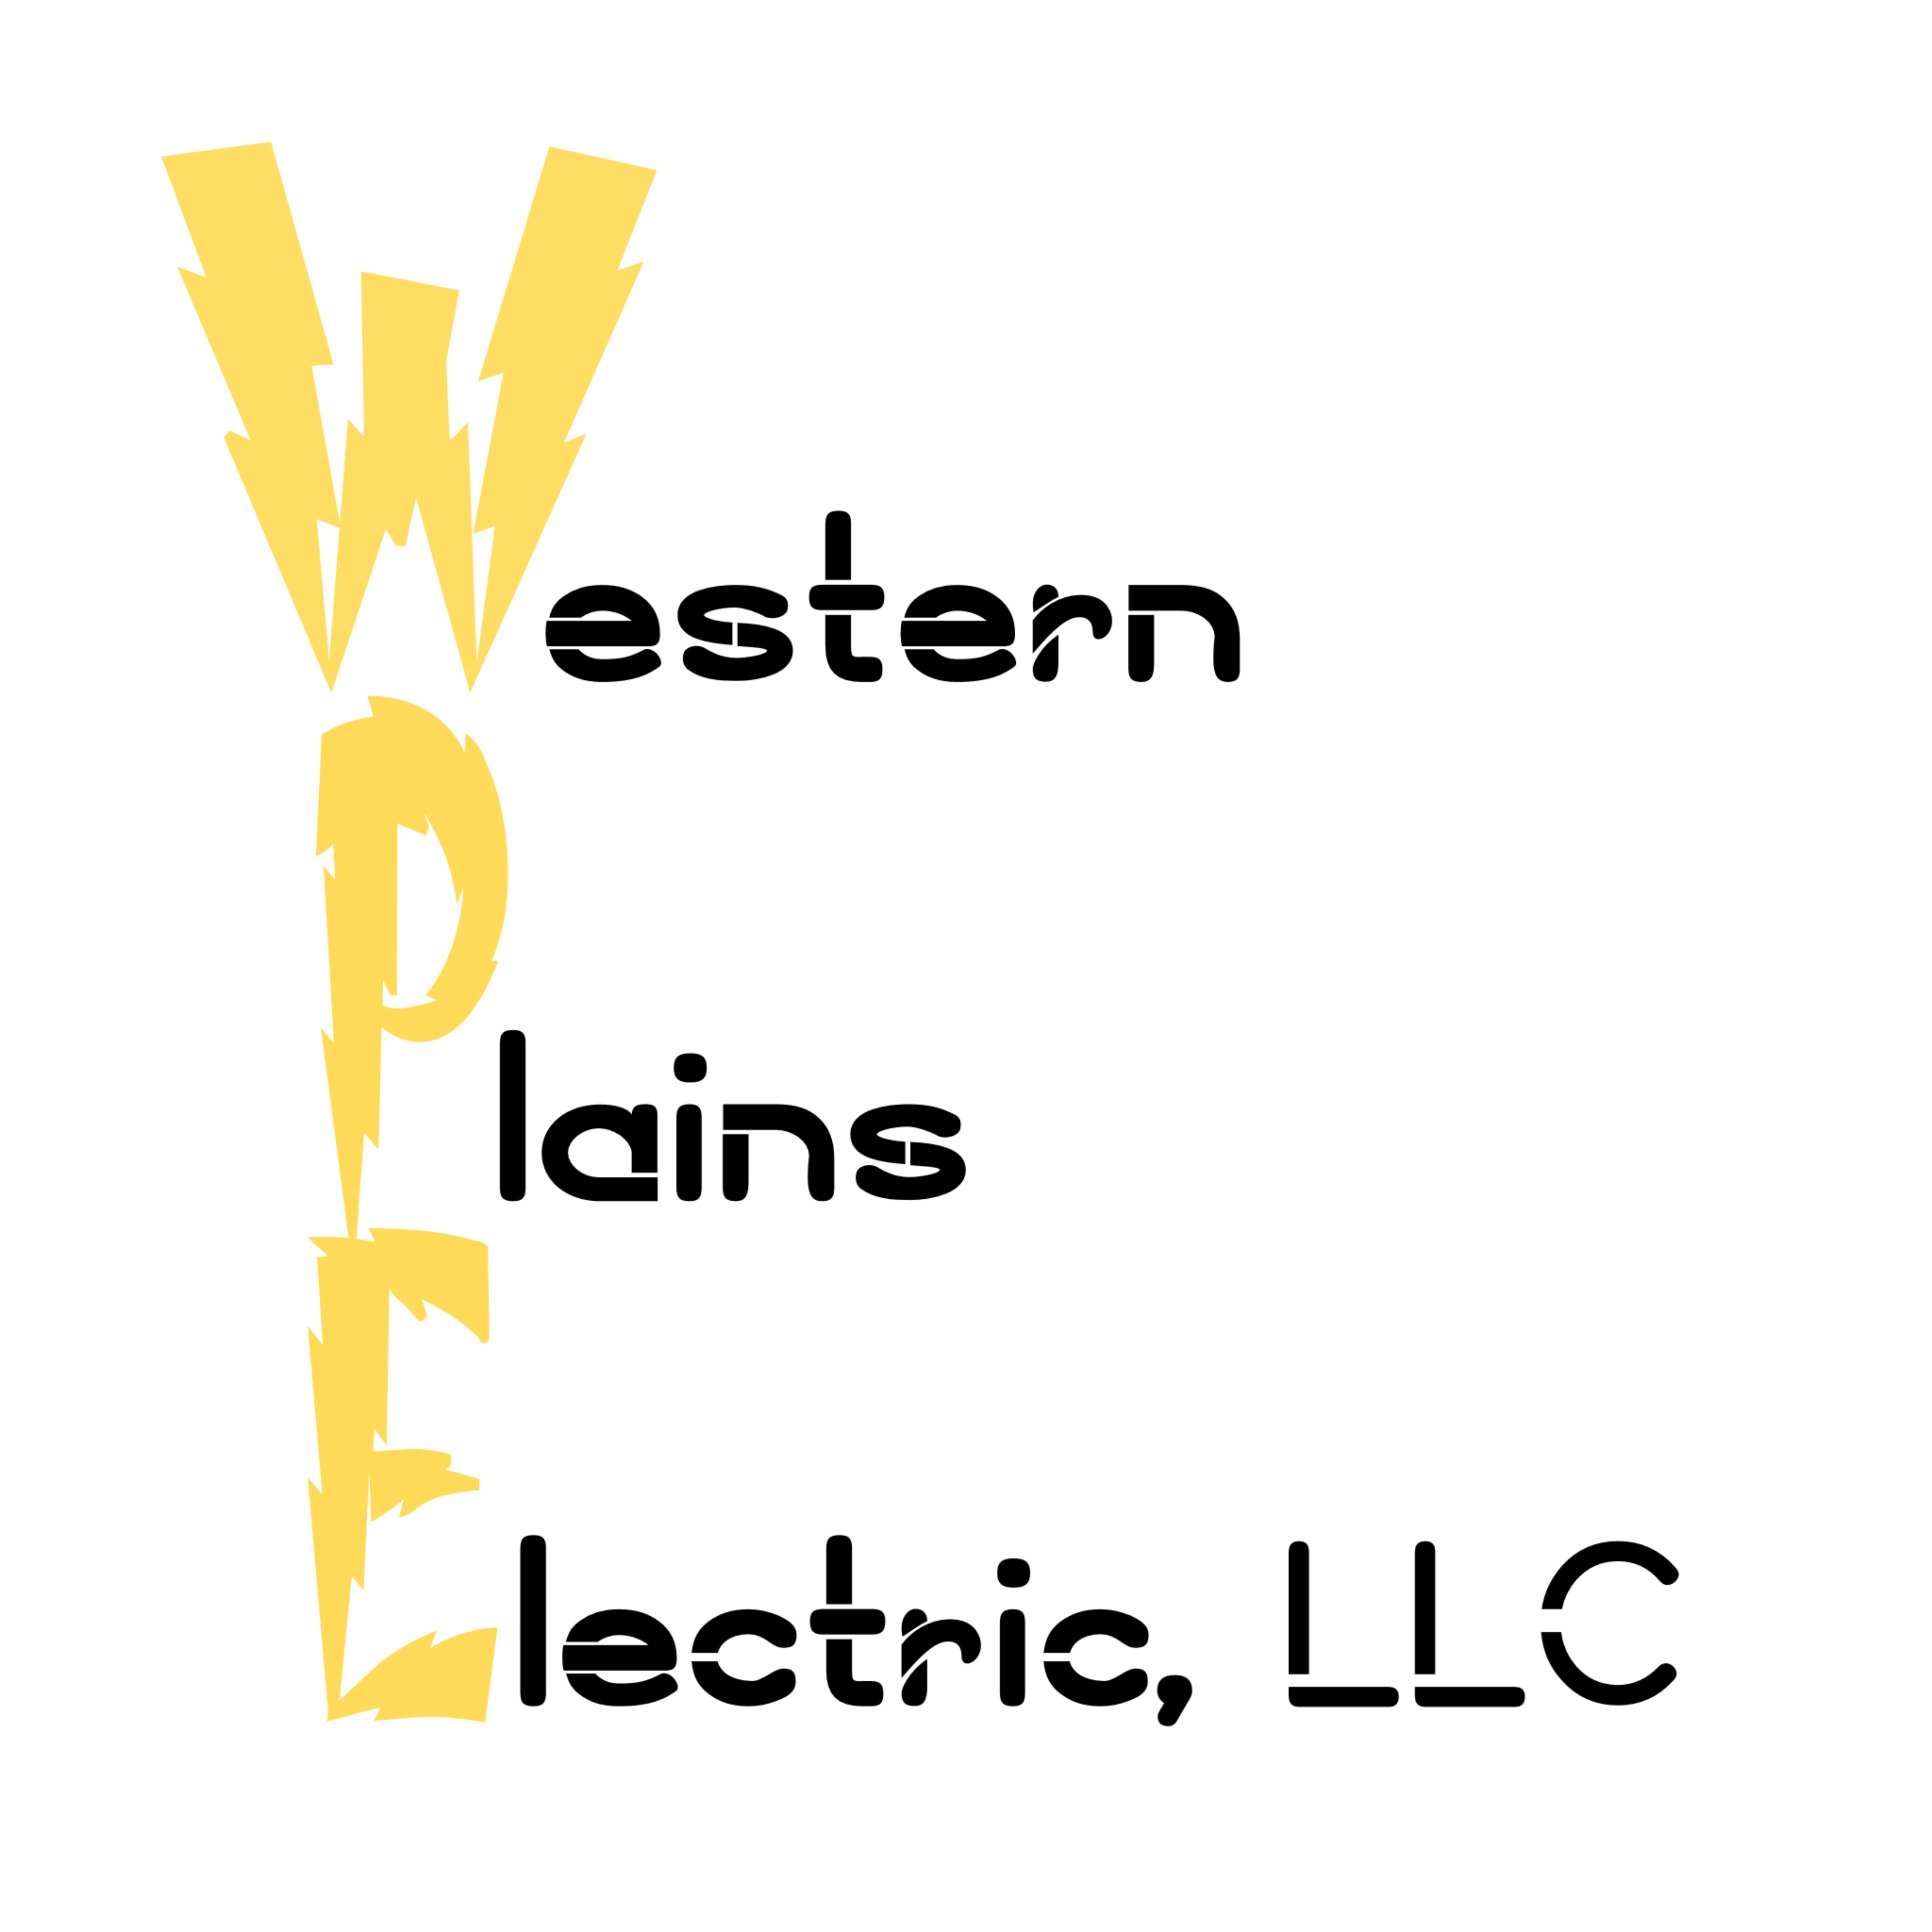 Western Plains Electric, LLC.